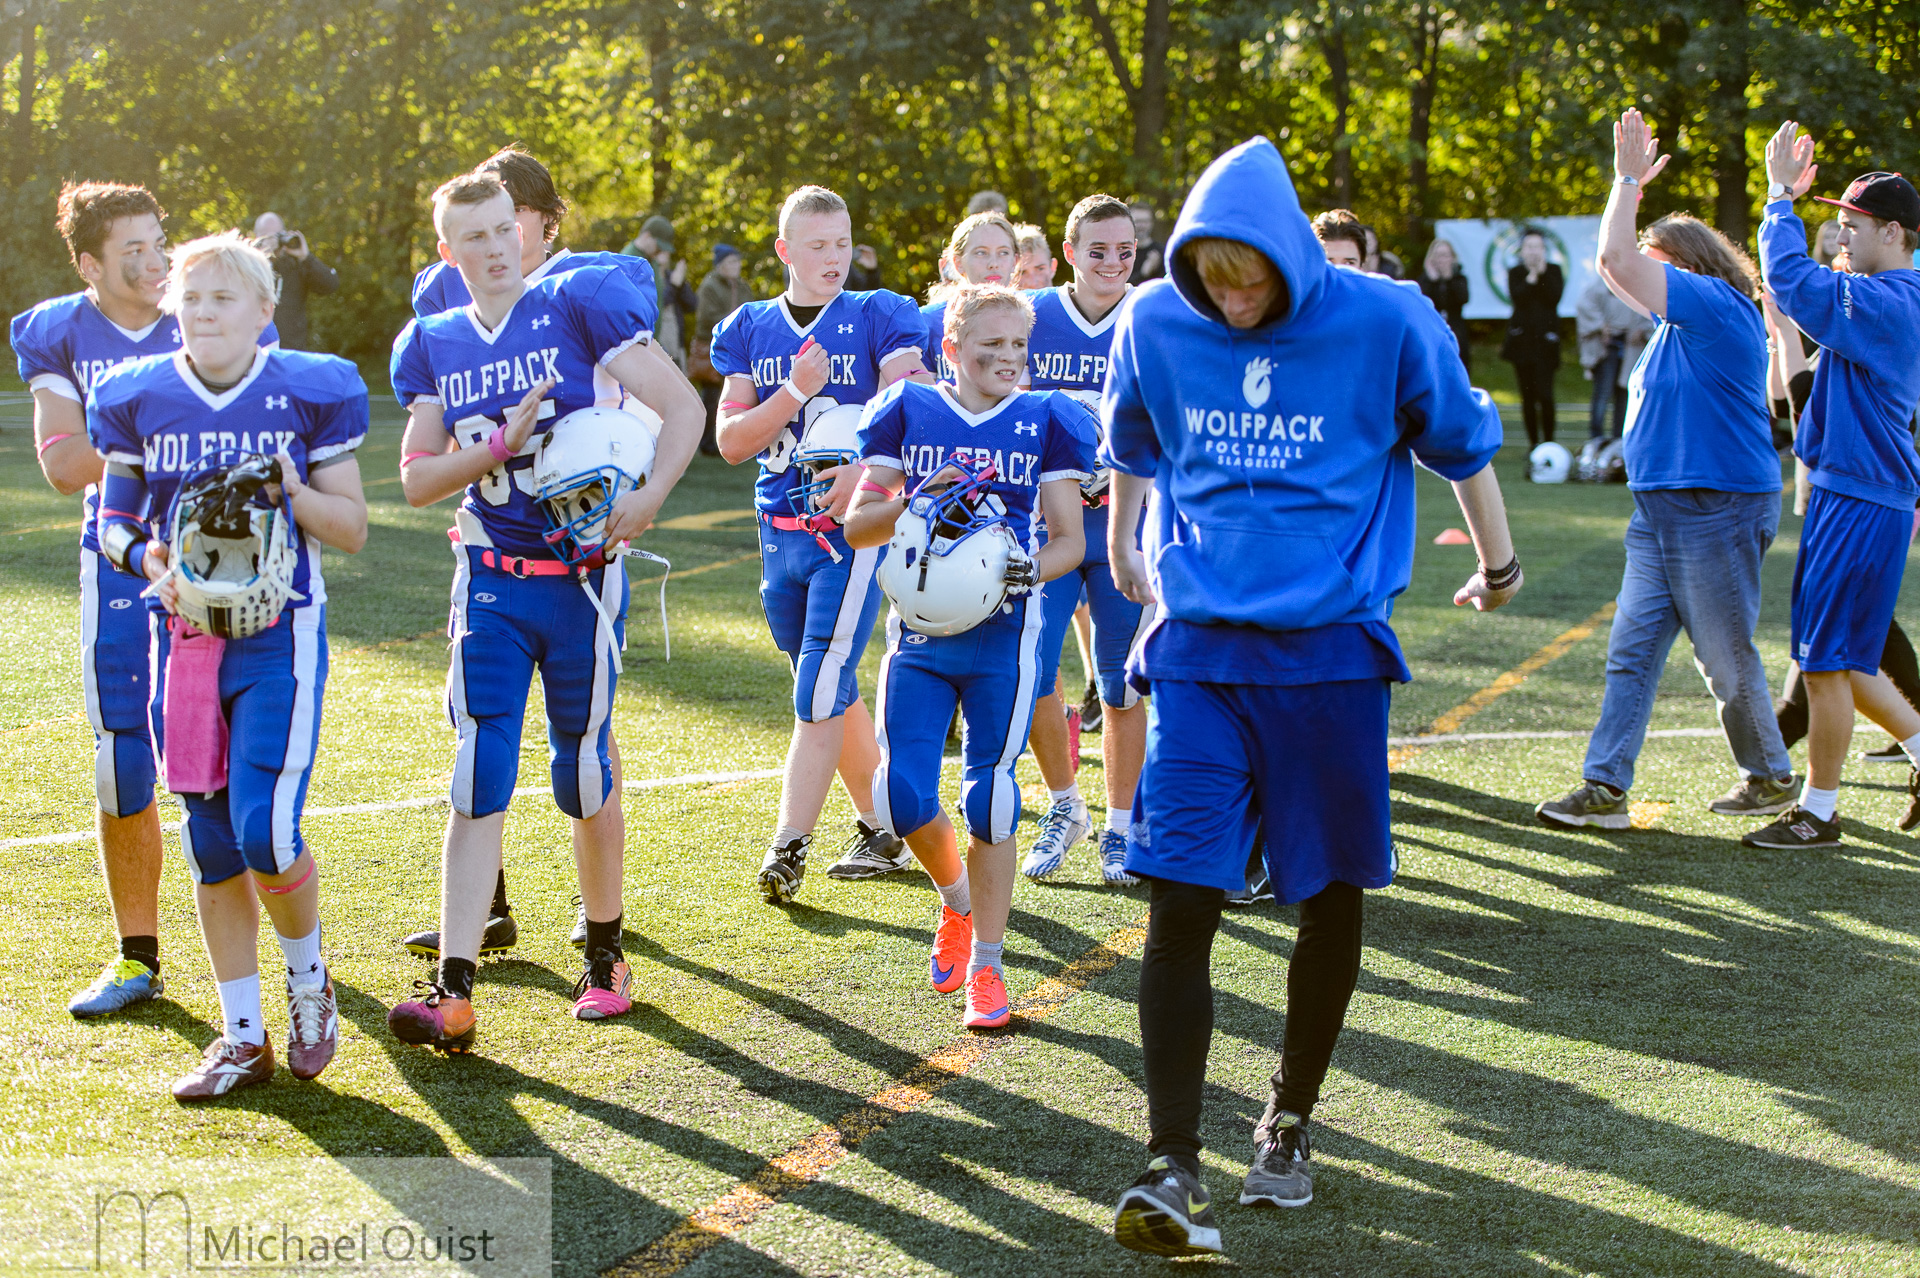 U16-RS-Bowl-2015-Ørestaden-Spartans-vs-Slagelse-Wolfpack-50